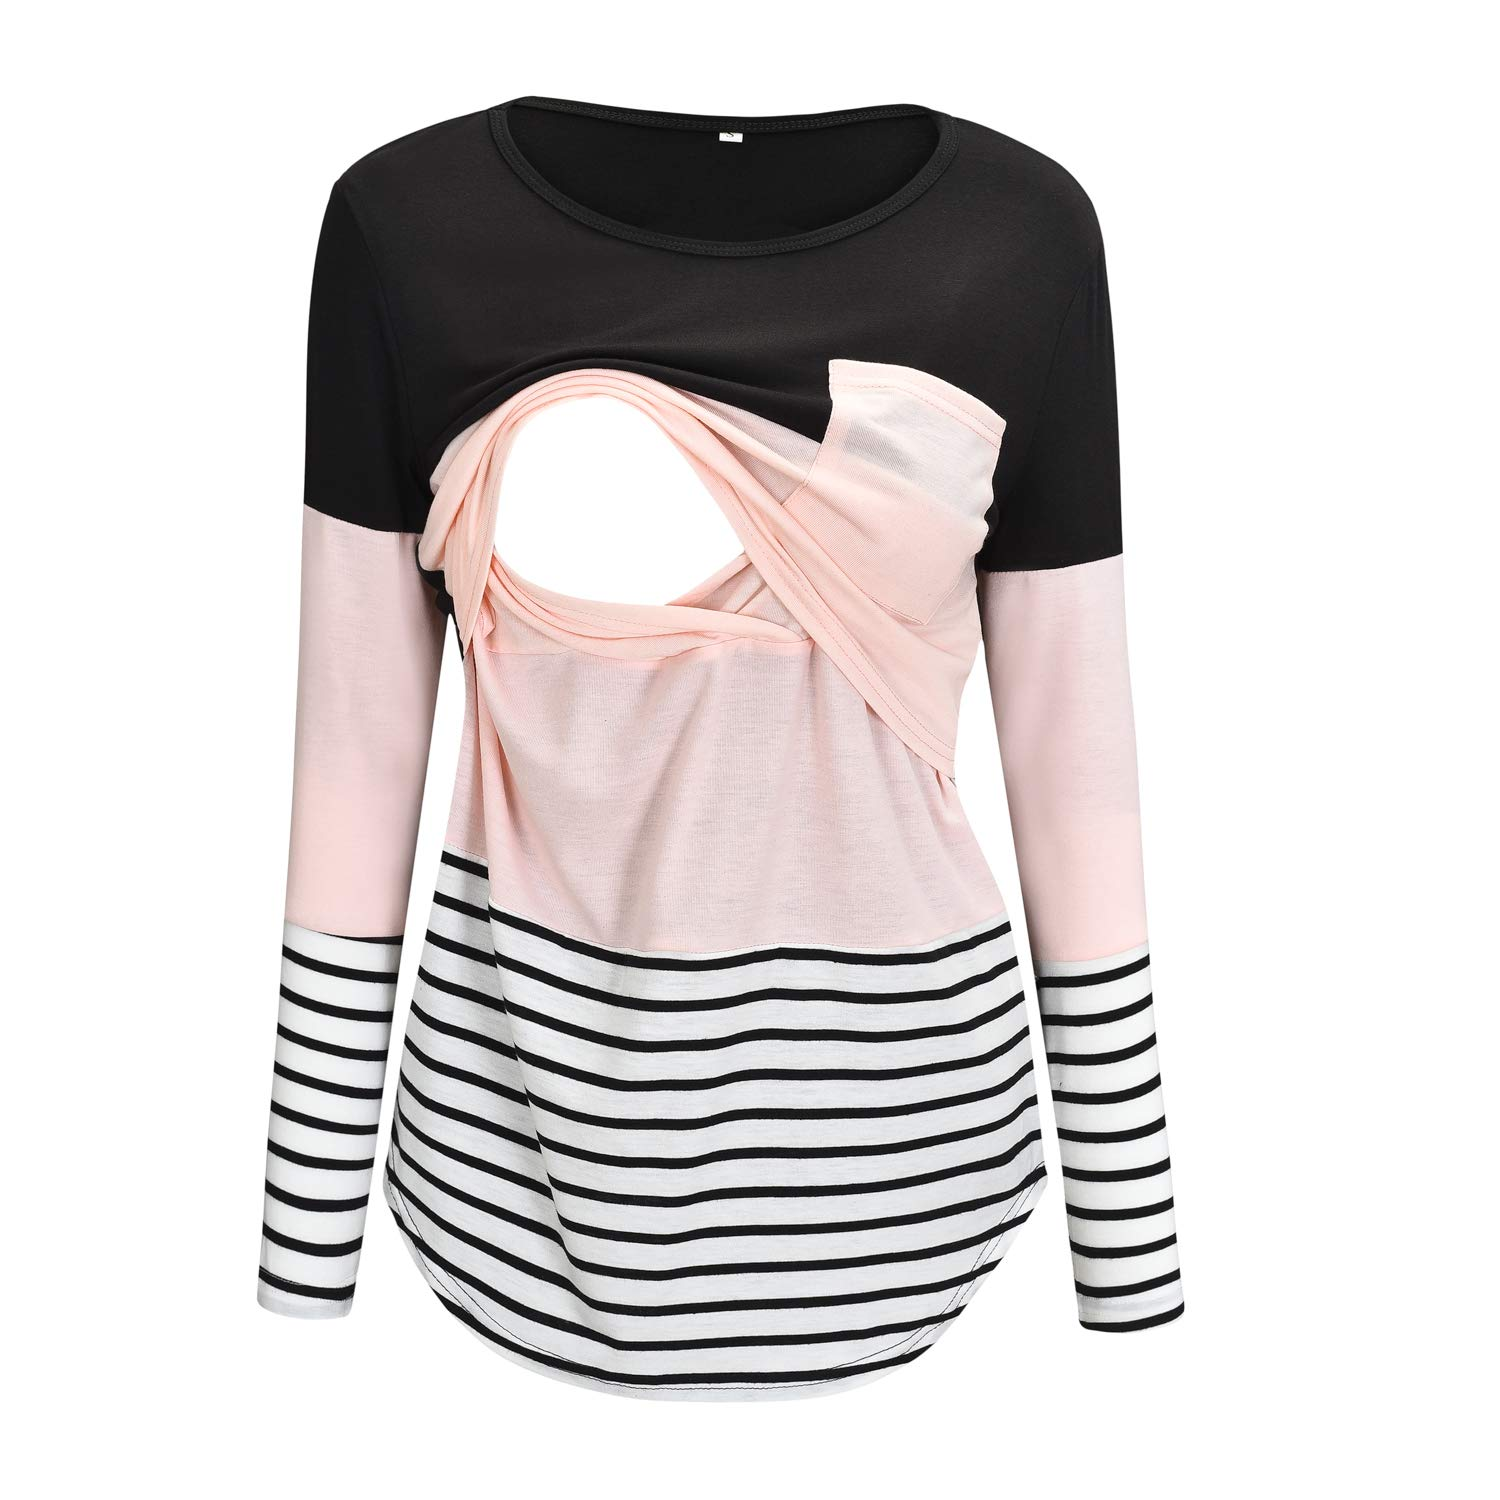 Bhome Nursing Shirt Color Block Maternity Top for Breastfeeding Pregnancy T-Shirt with Pocket